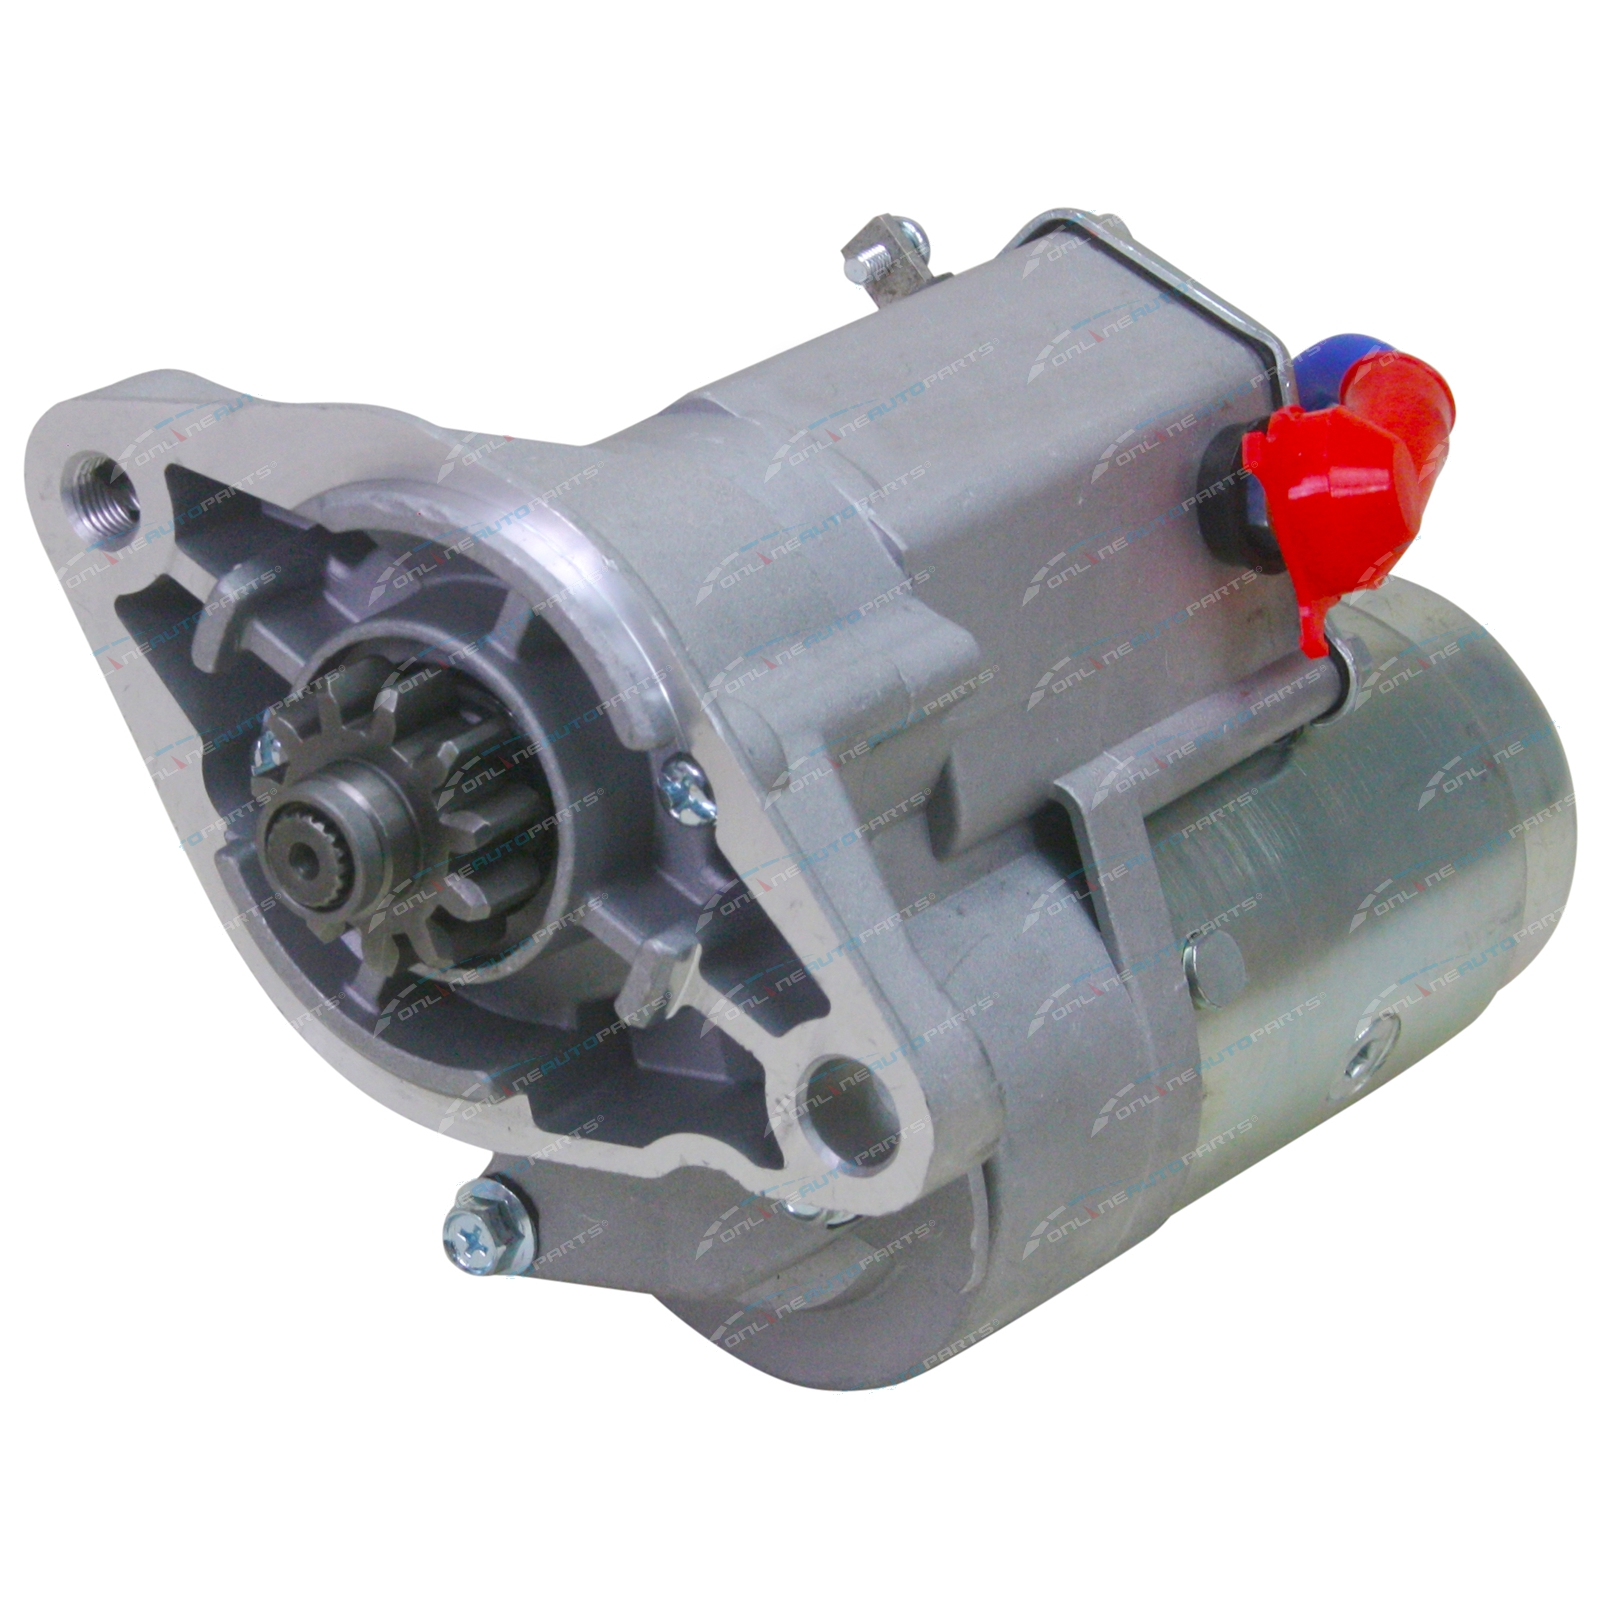 Starter Motor Suits Toyota Hilux Ln86 Ln106 Ln107 Ln111 4cyl 3l 28l Alternator Wiring Diagram Click To Enlarge